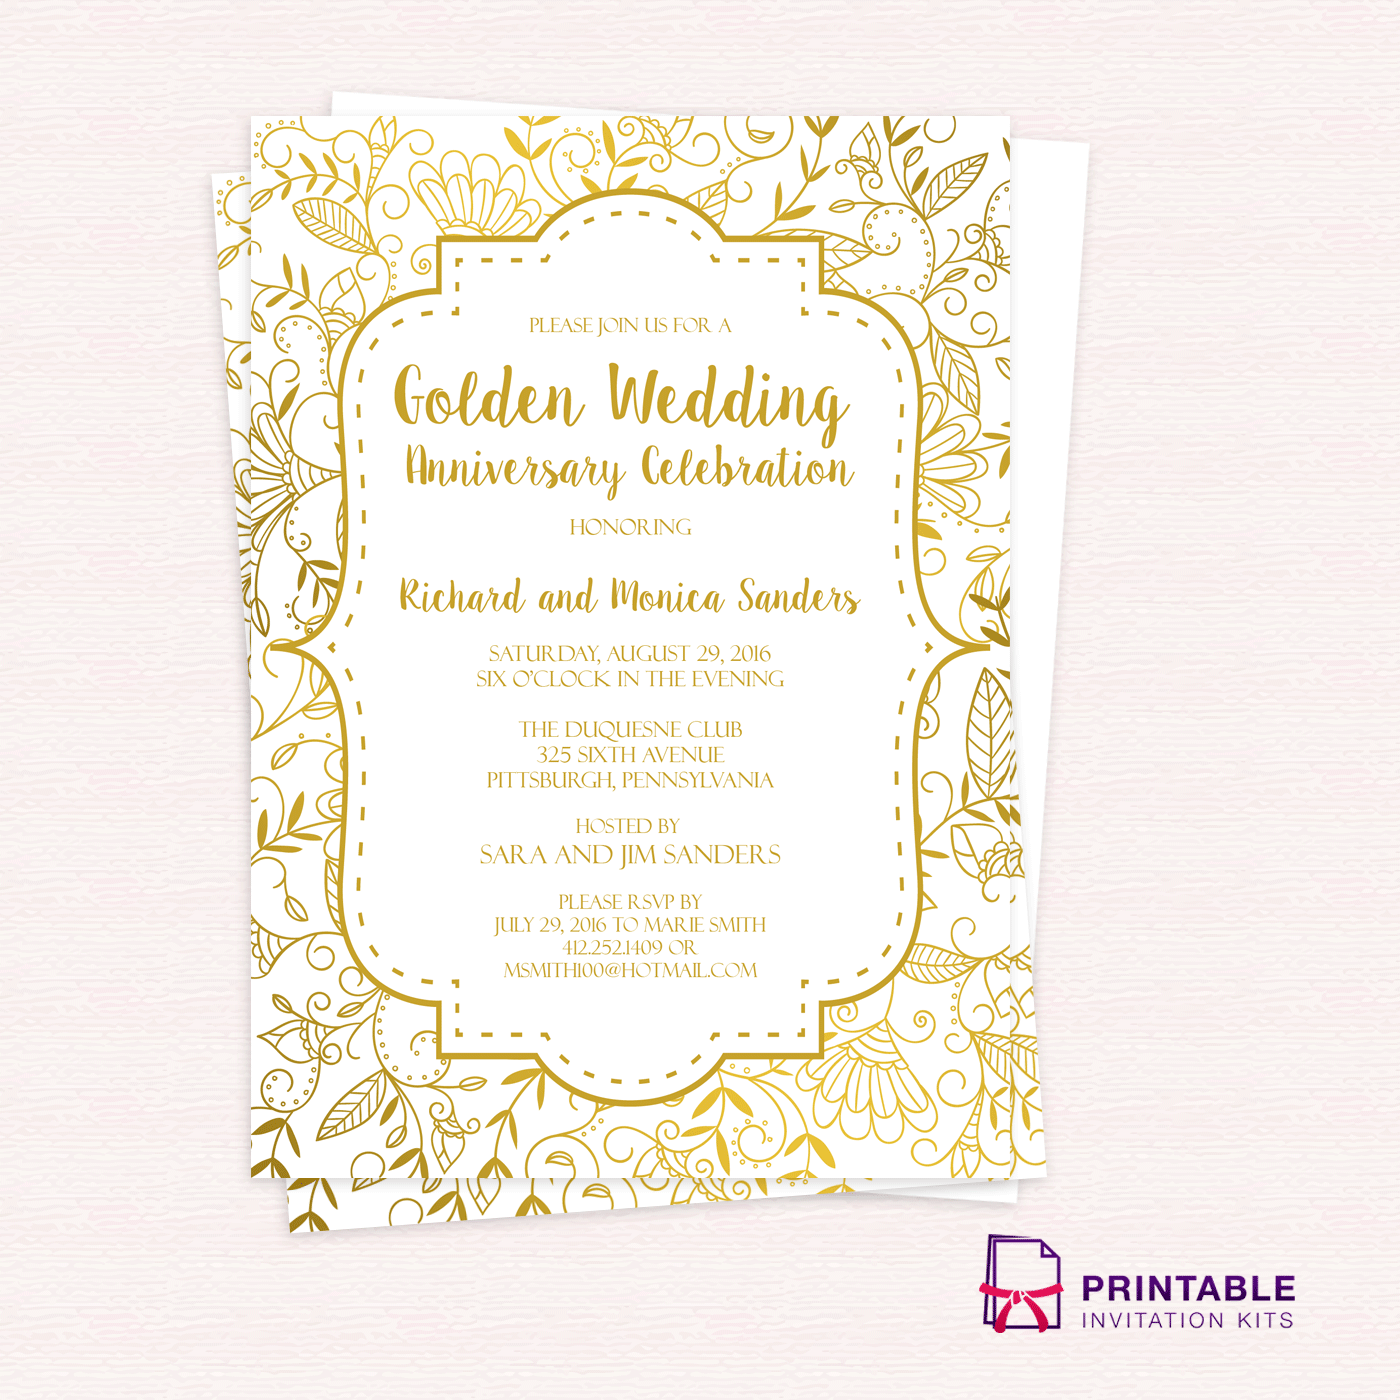 golden wedding anniversary invitation template wedding invitation rh printableinvitationkits com printable anniversary invitations templates making - Make Your Own Anniversary Card